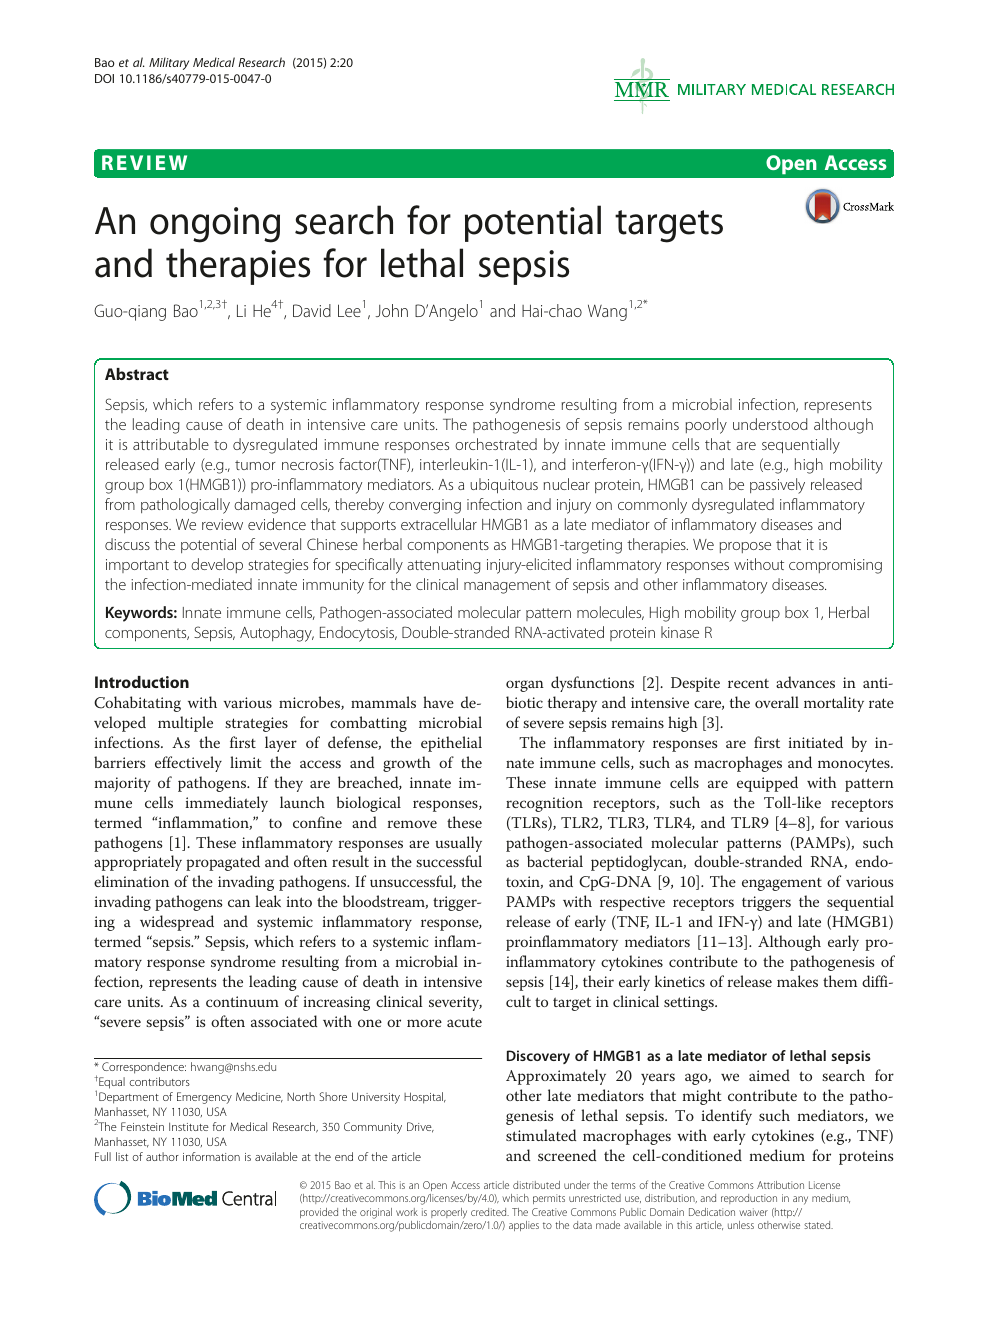 An ongoing search for potential targets and therapies for